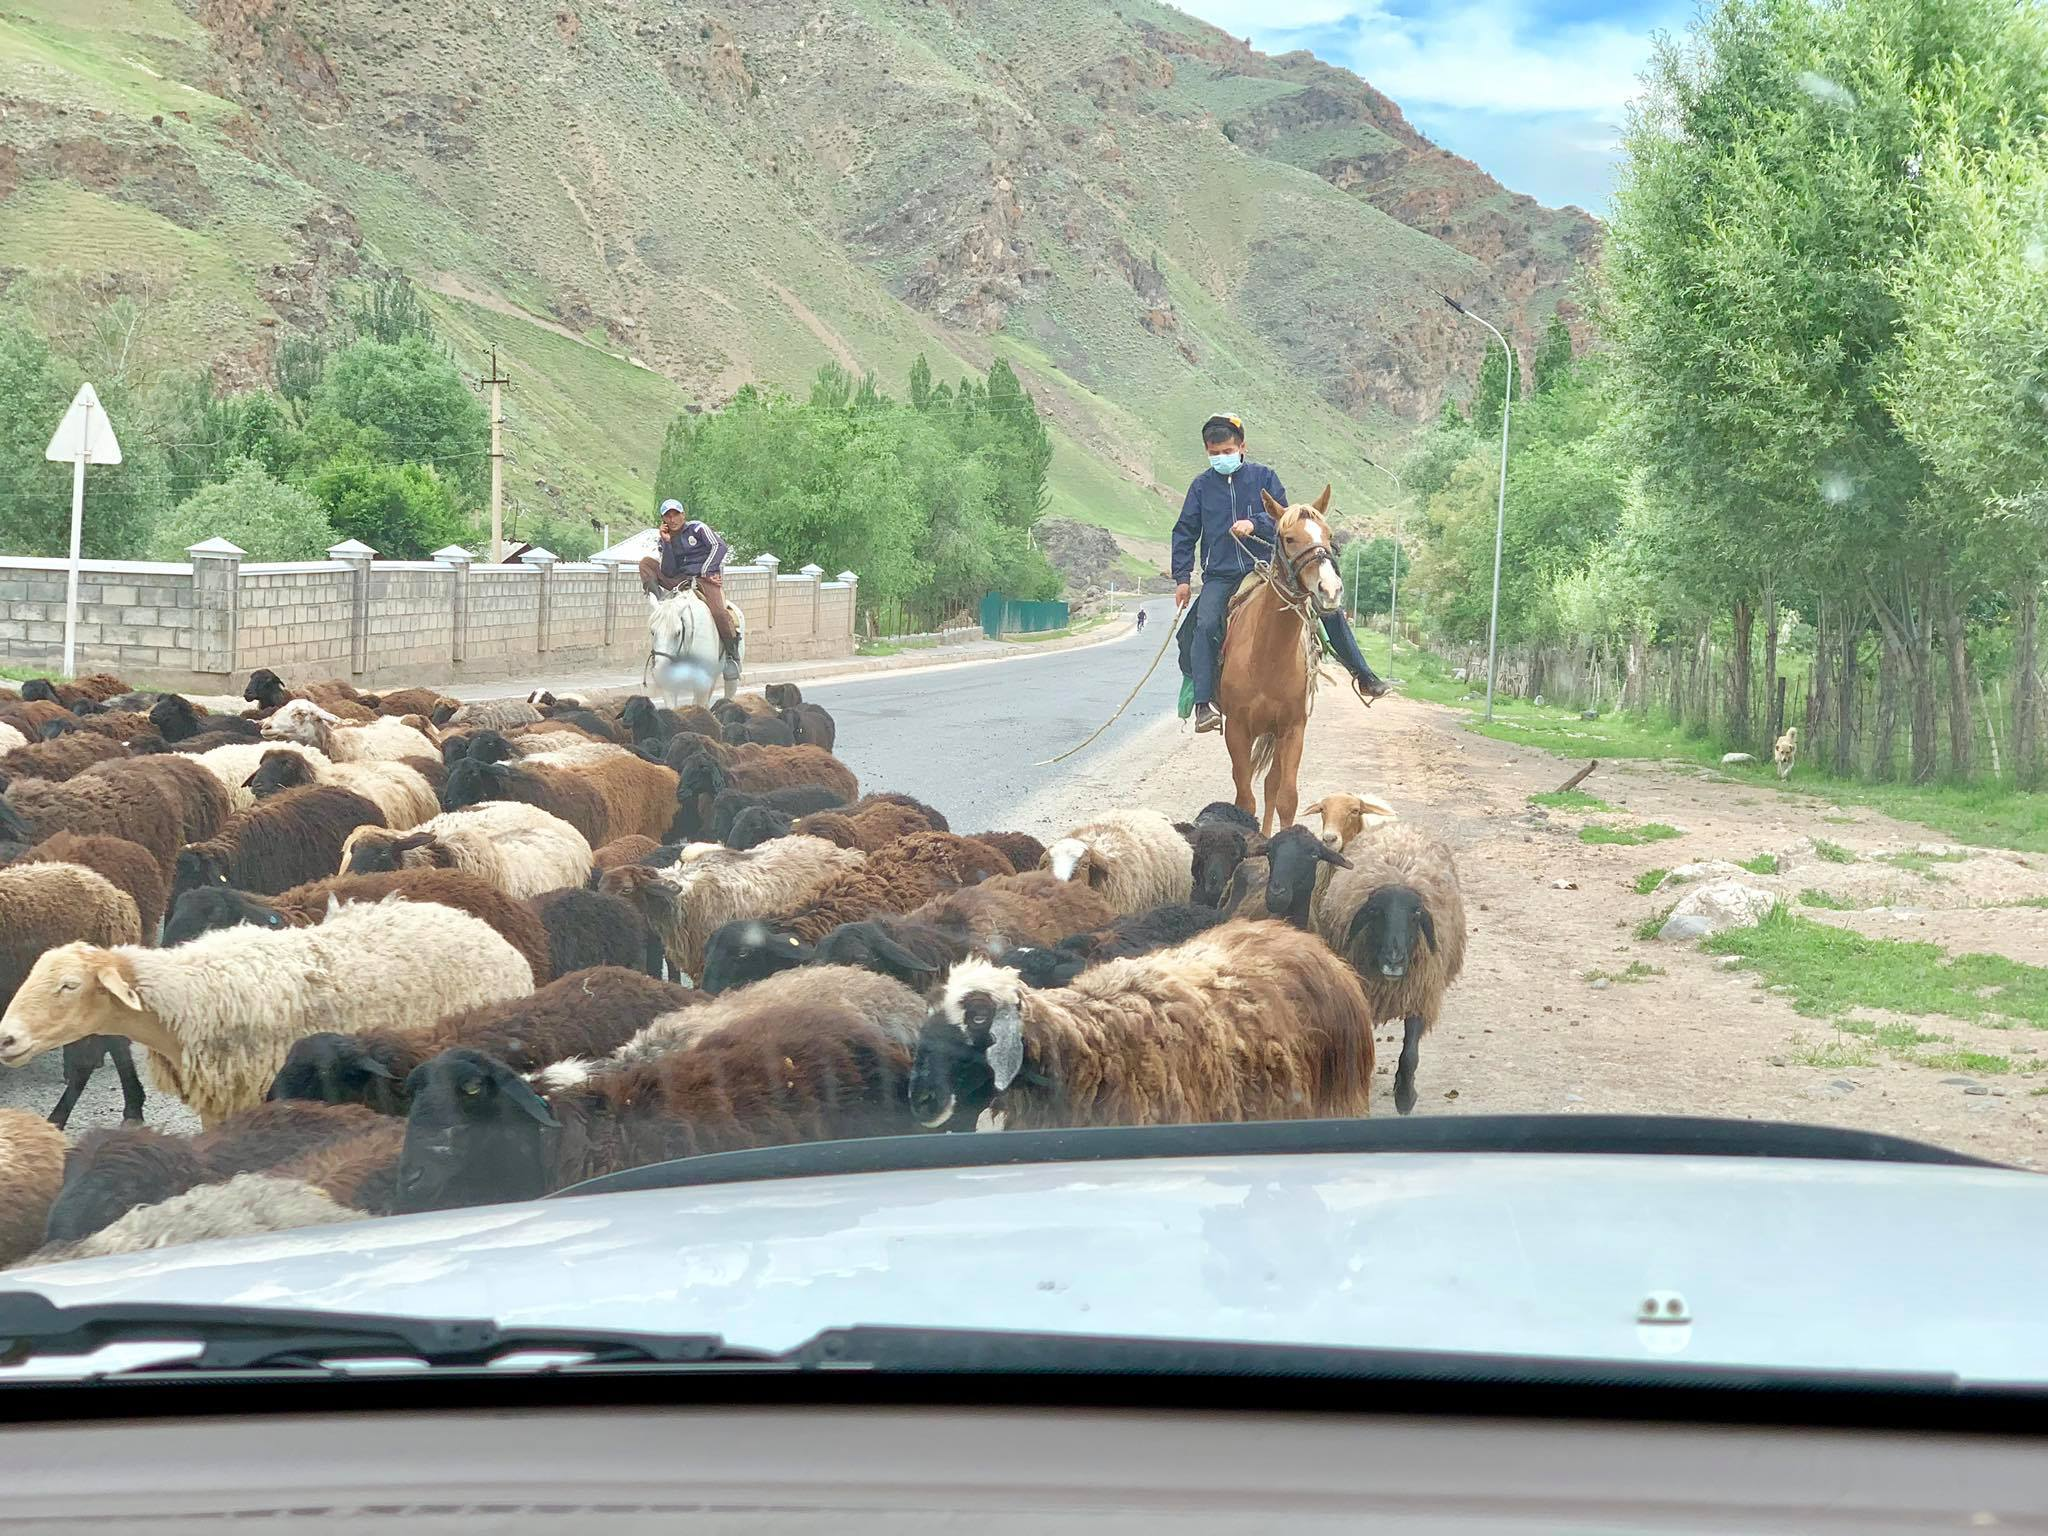 Kach Solo Travels in 2019 Hello from KYRGYZSTAN, my 128th country14.jpg